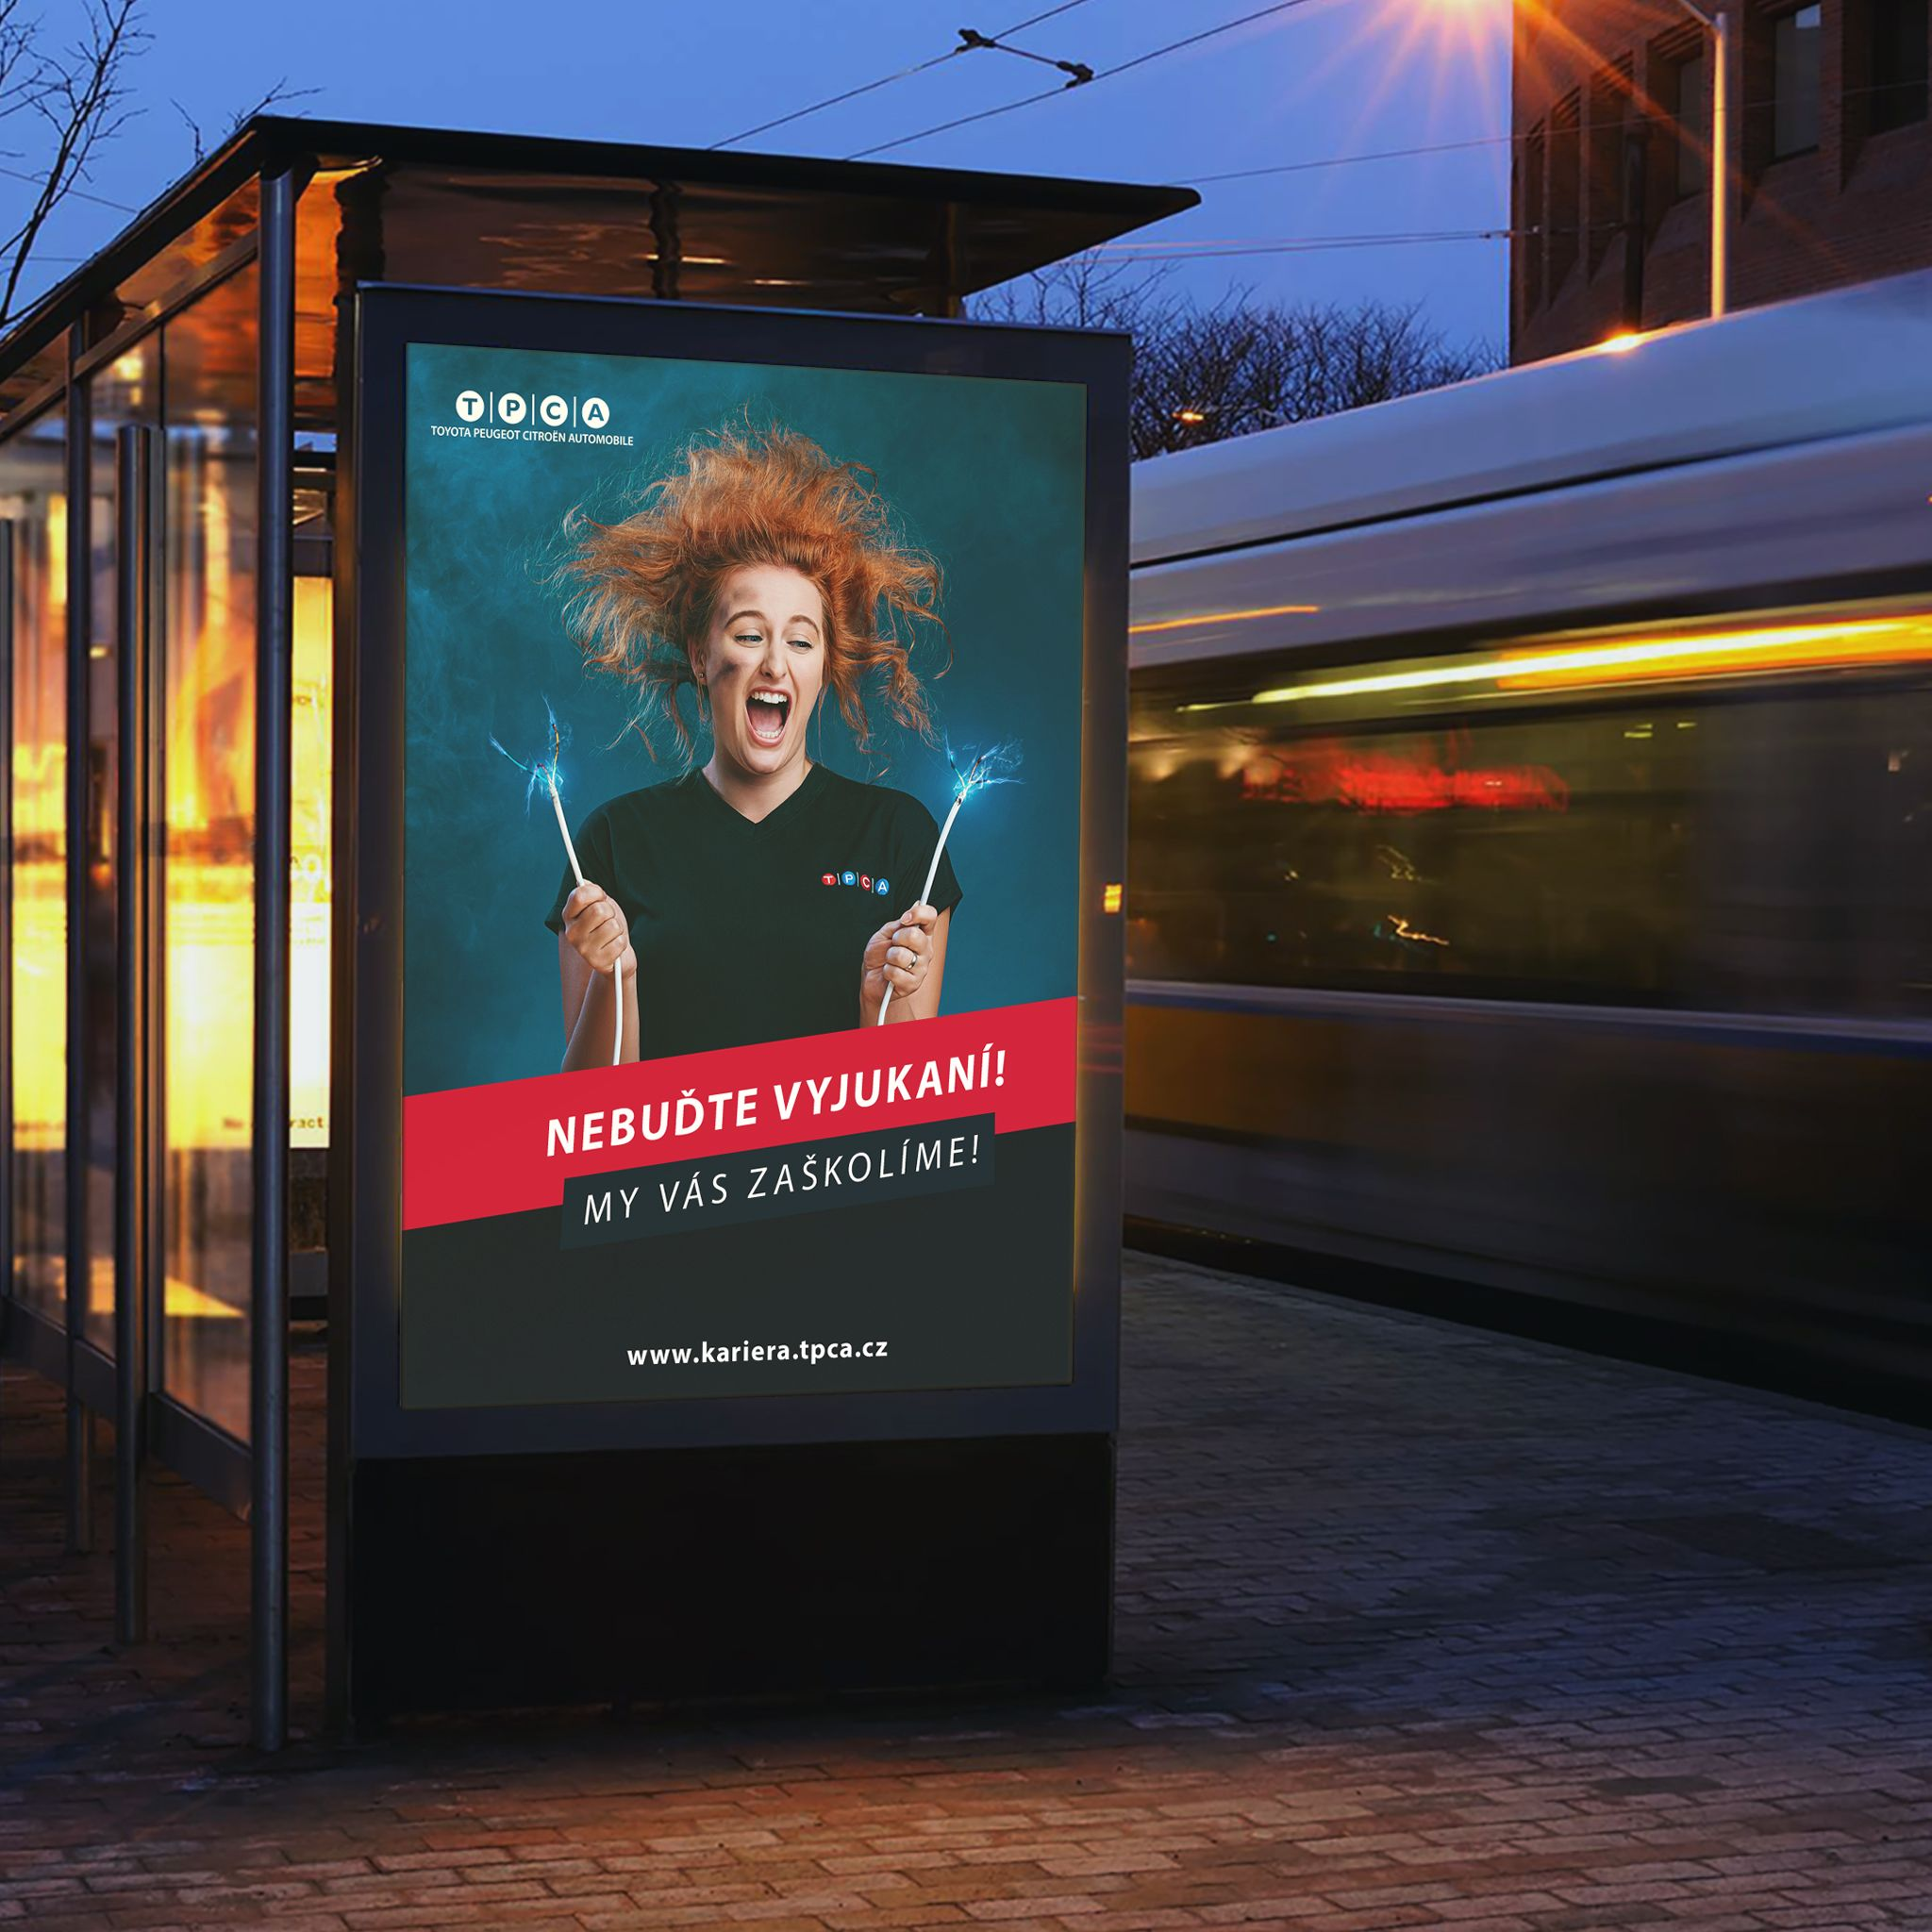 bus-stop-billboard-mockup_3